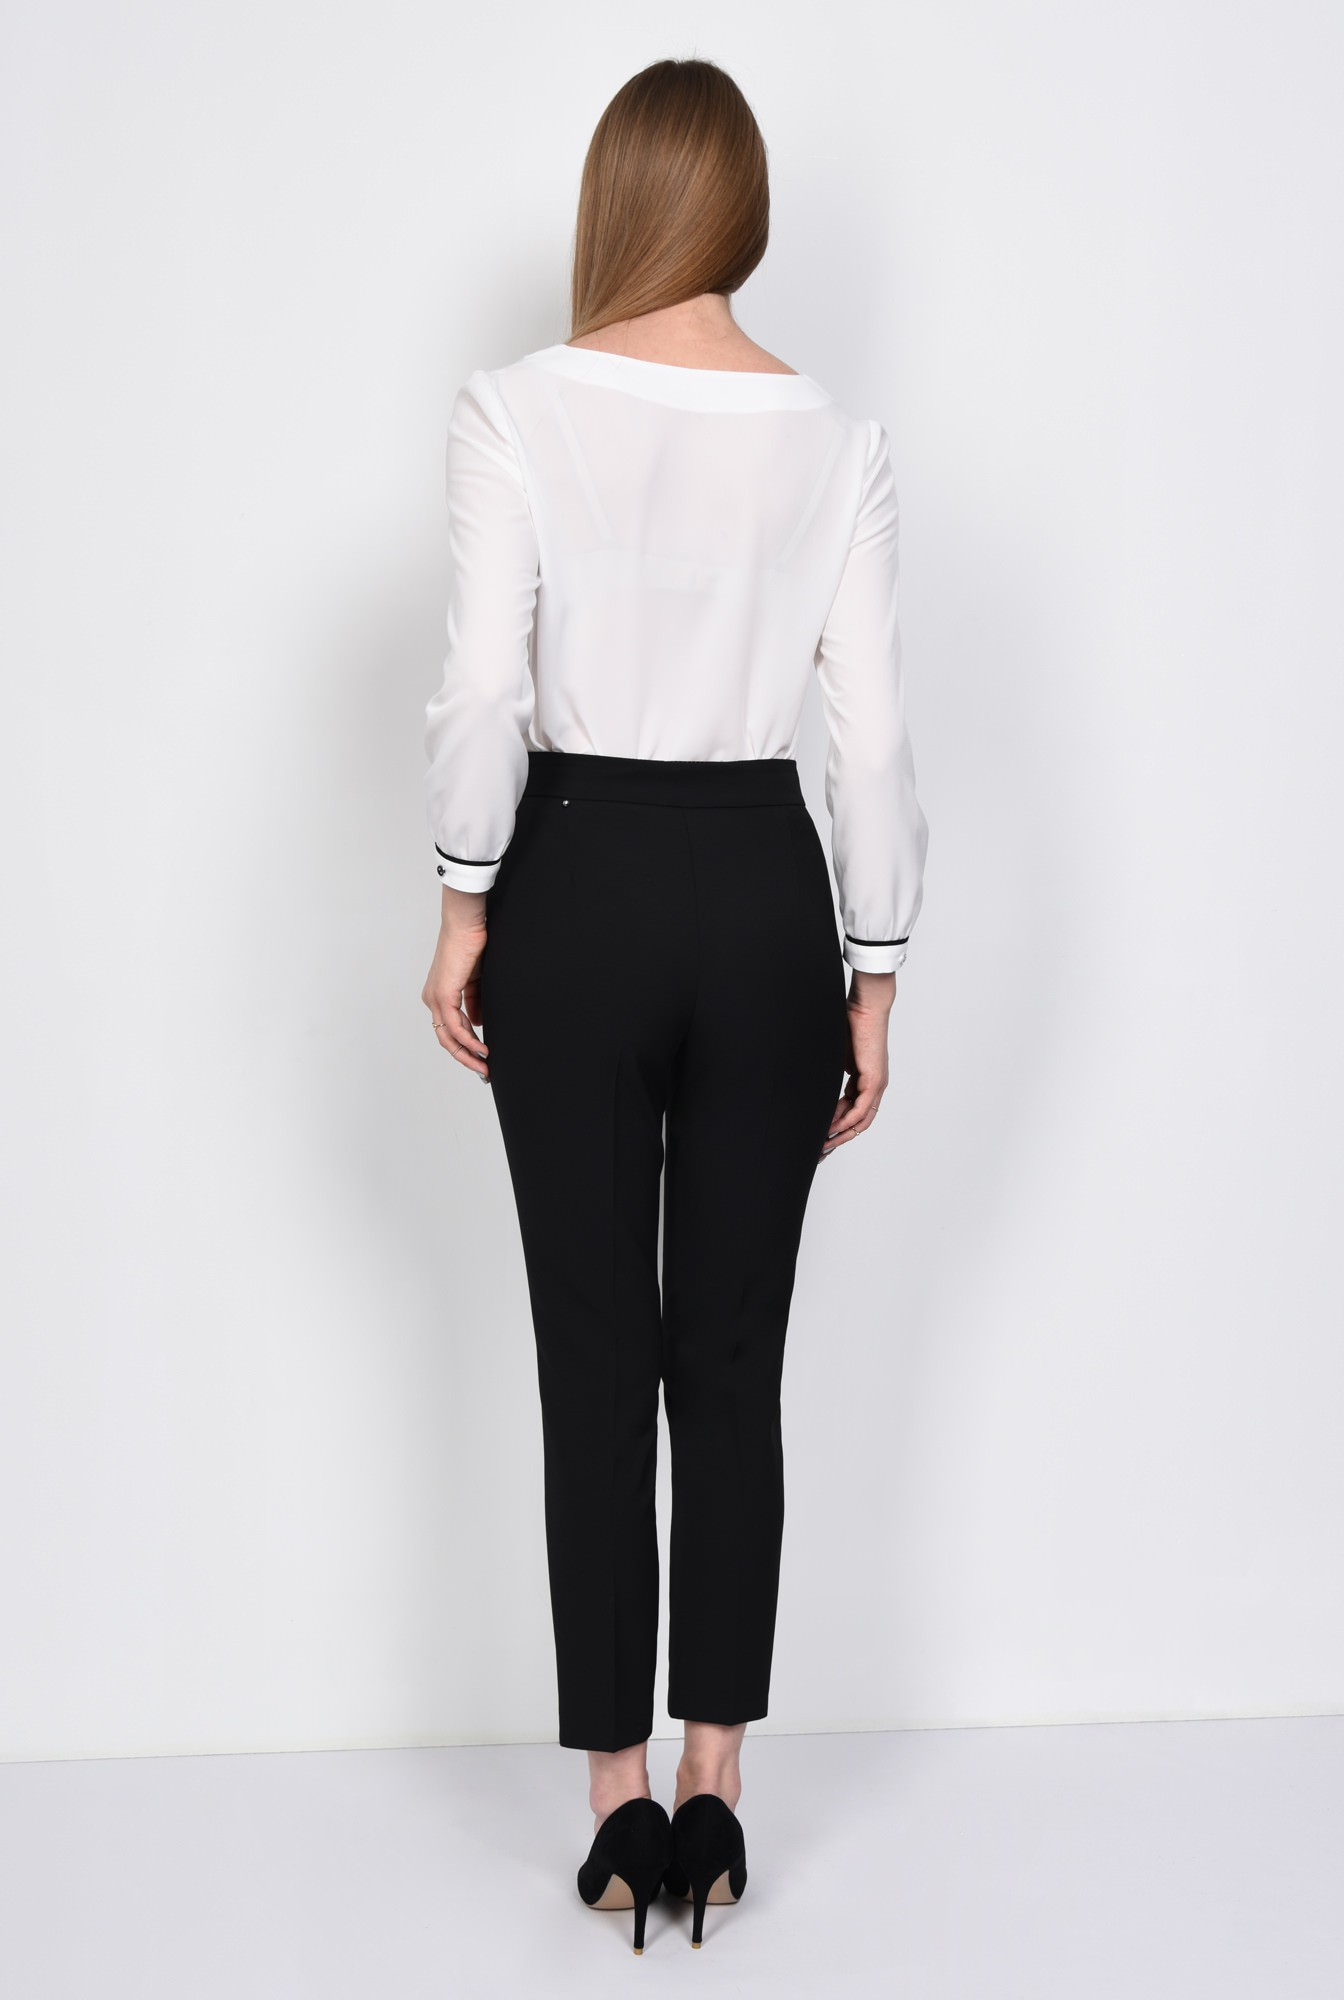 1 - PANTALON OFFICE CONIC PT 127-NEGRU